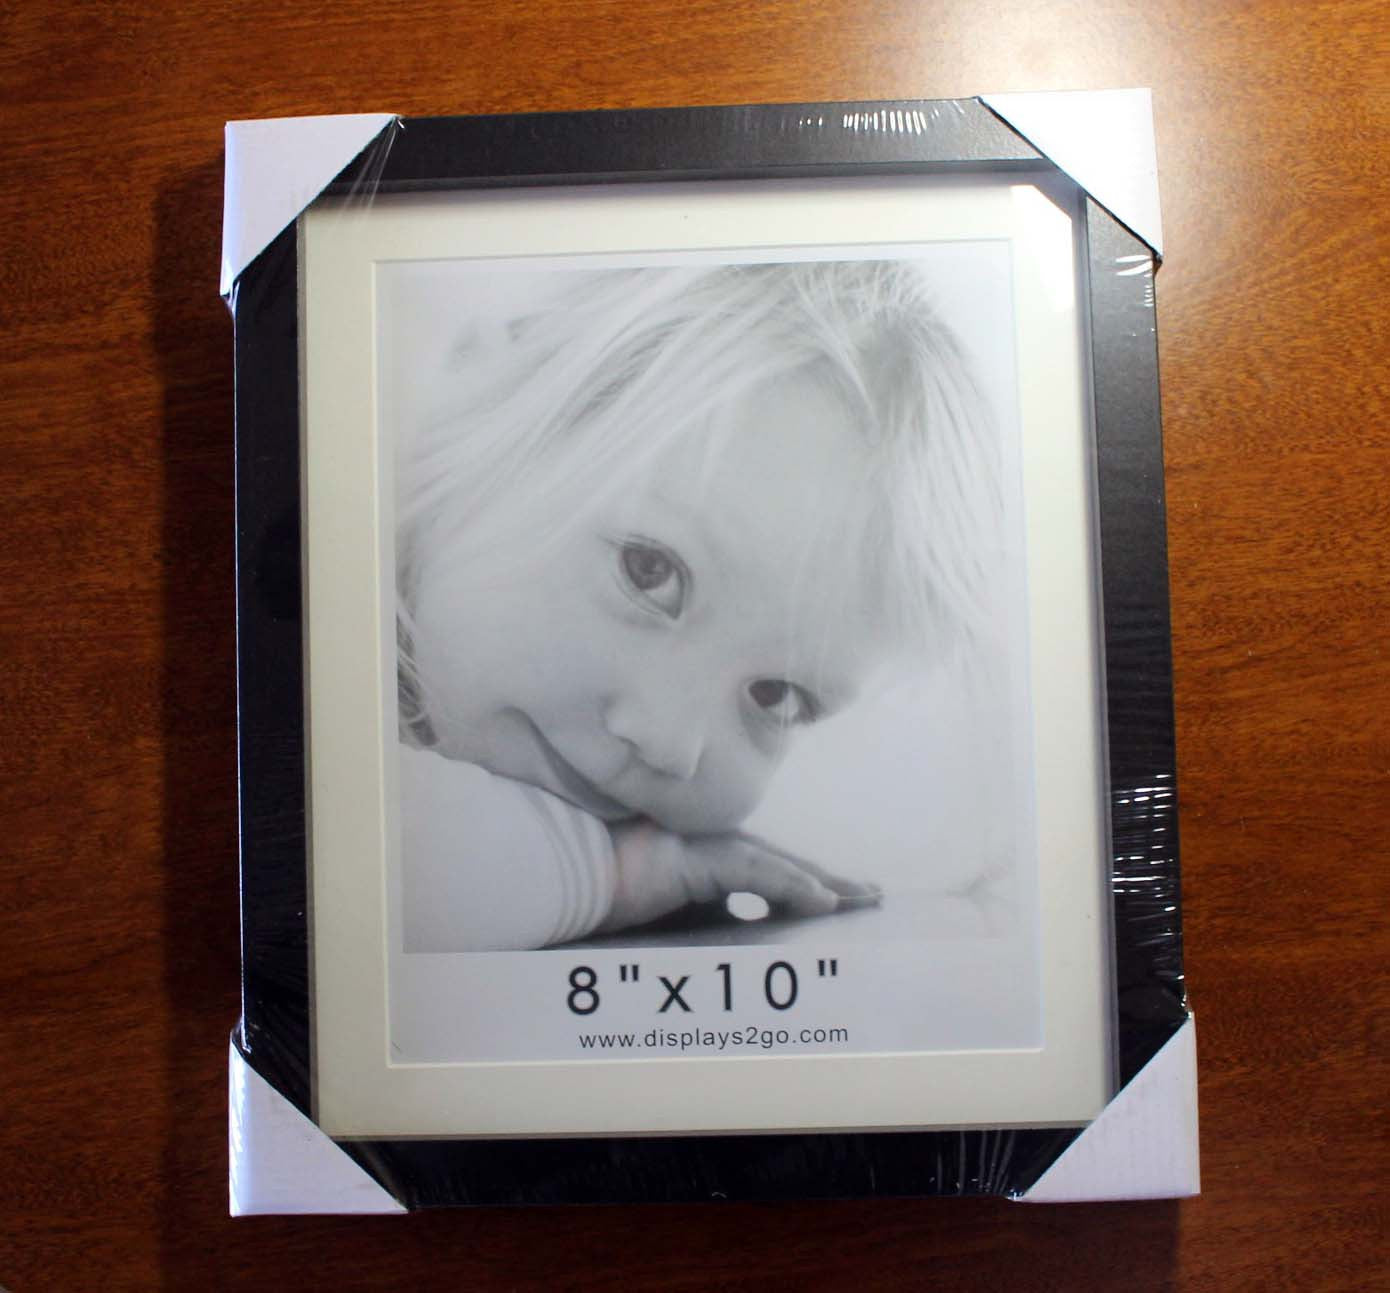 8 x 10 inch Black Picture Frame for Sale or use with Art Prints ...